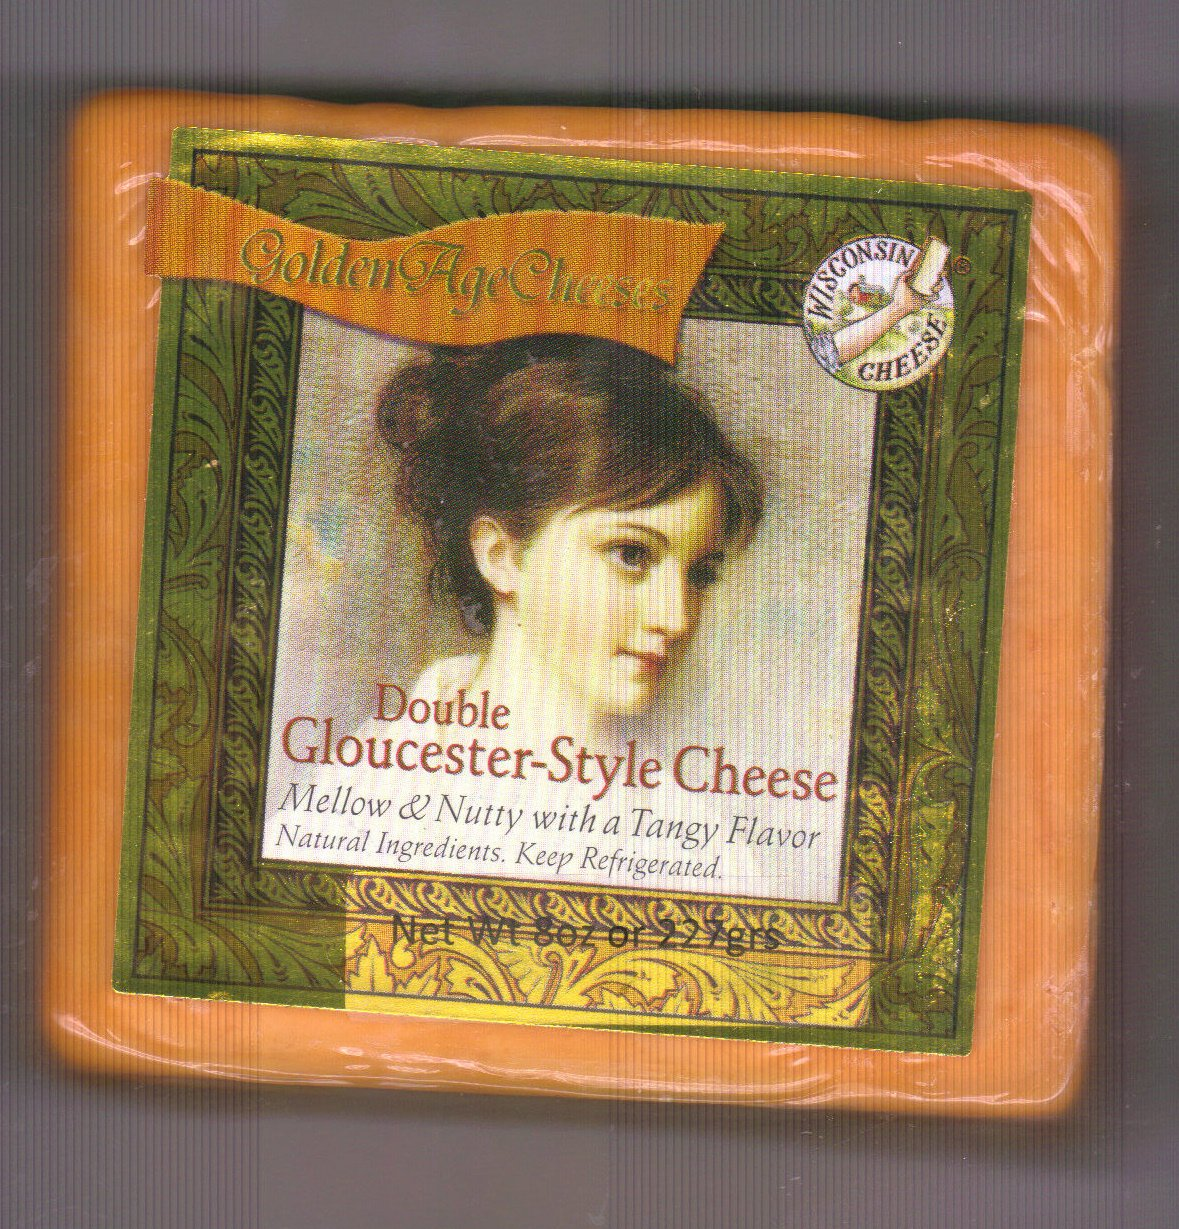 Golden Age Cheeses  Mellow & Nutty with a Tangy Flavor 2lbs Real Wisconsin Cheese